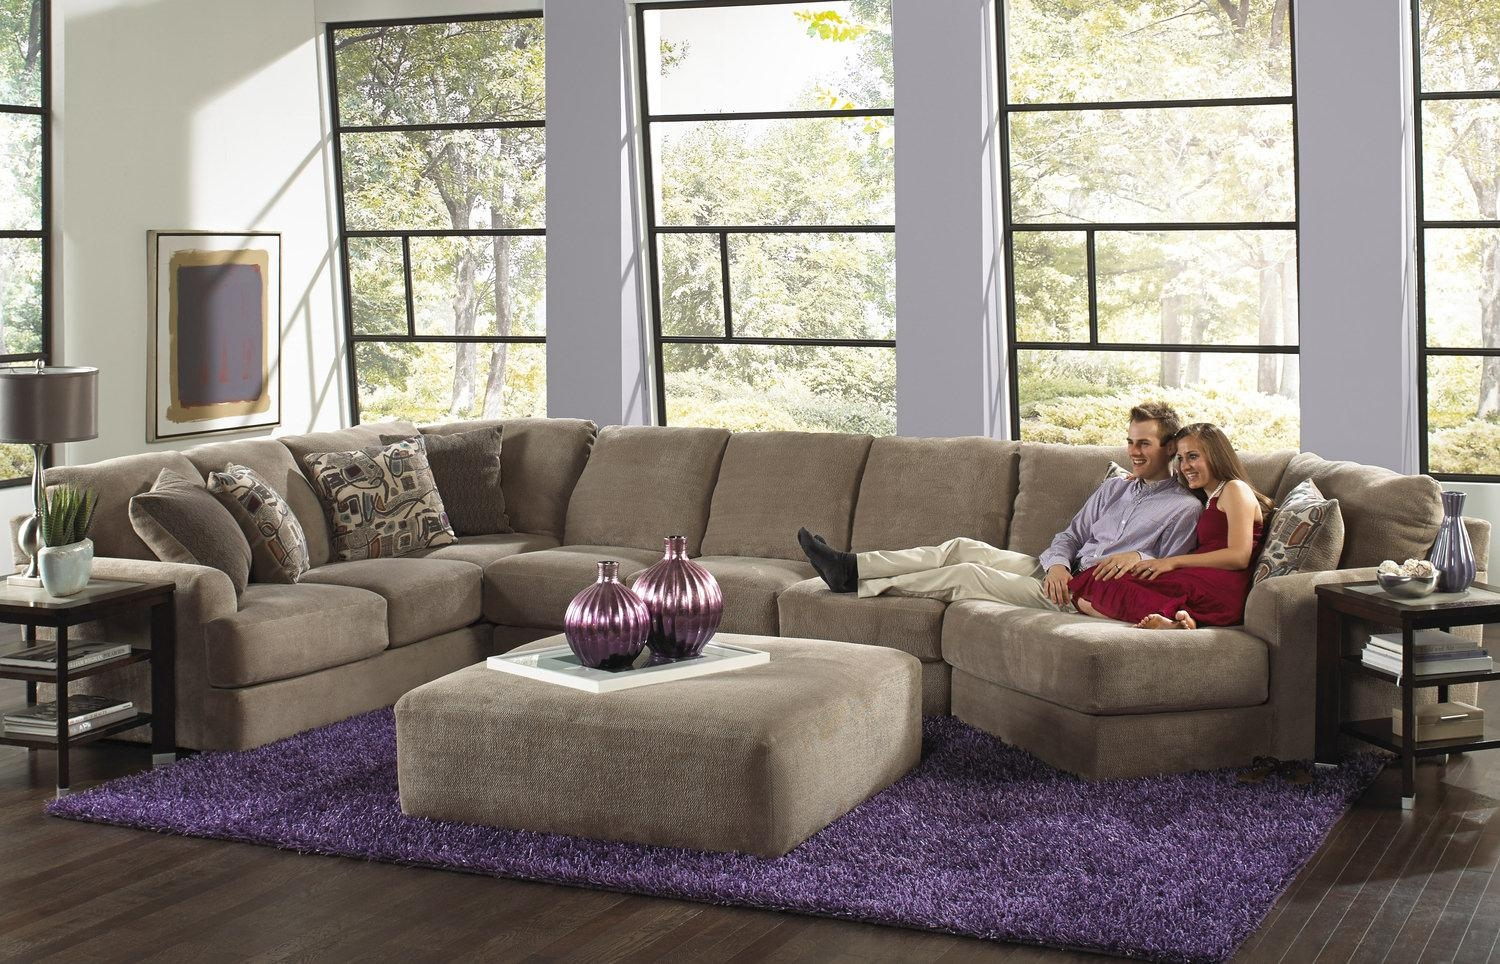 Regal 3 Piece Modular Sectional | Hom Furniture | Furniture Stores With Regard To Cuddler Sectional Sofa (View 13 of 15)